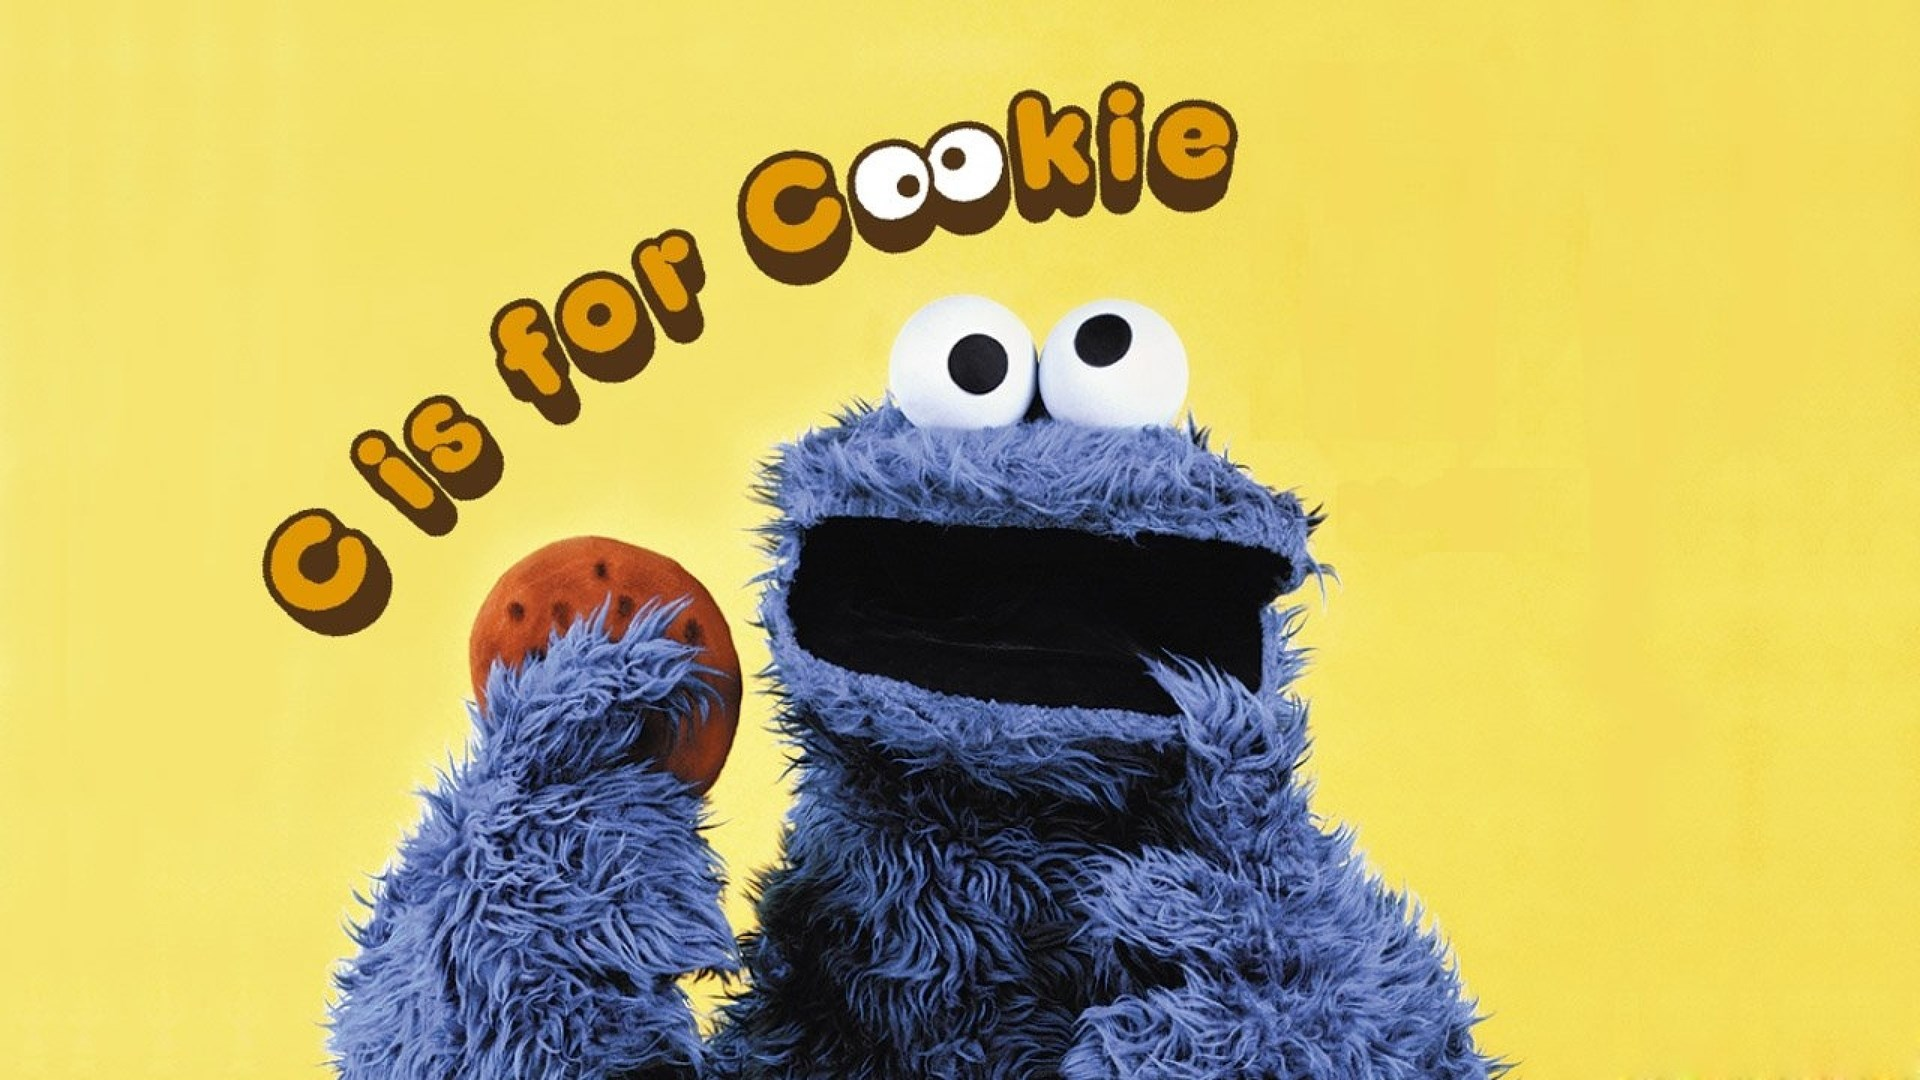 Wallpaperwiki Download Best Cookie Monster Wallpaper Hd PIC